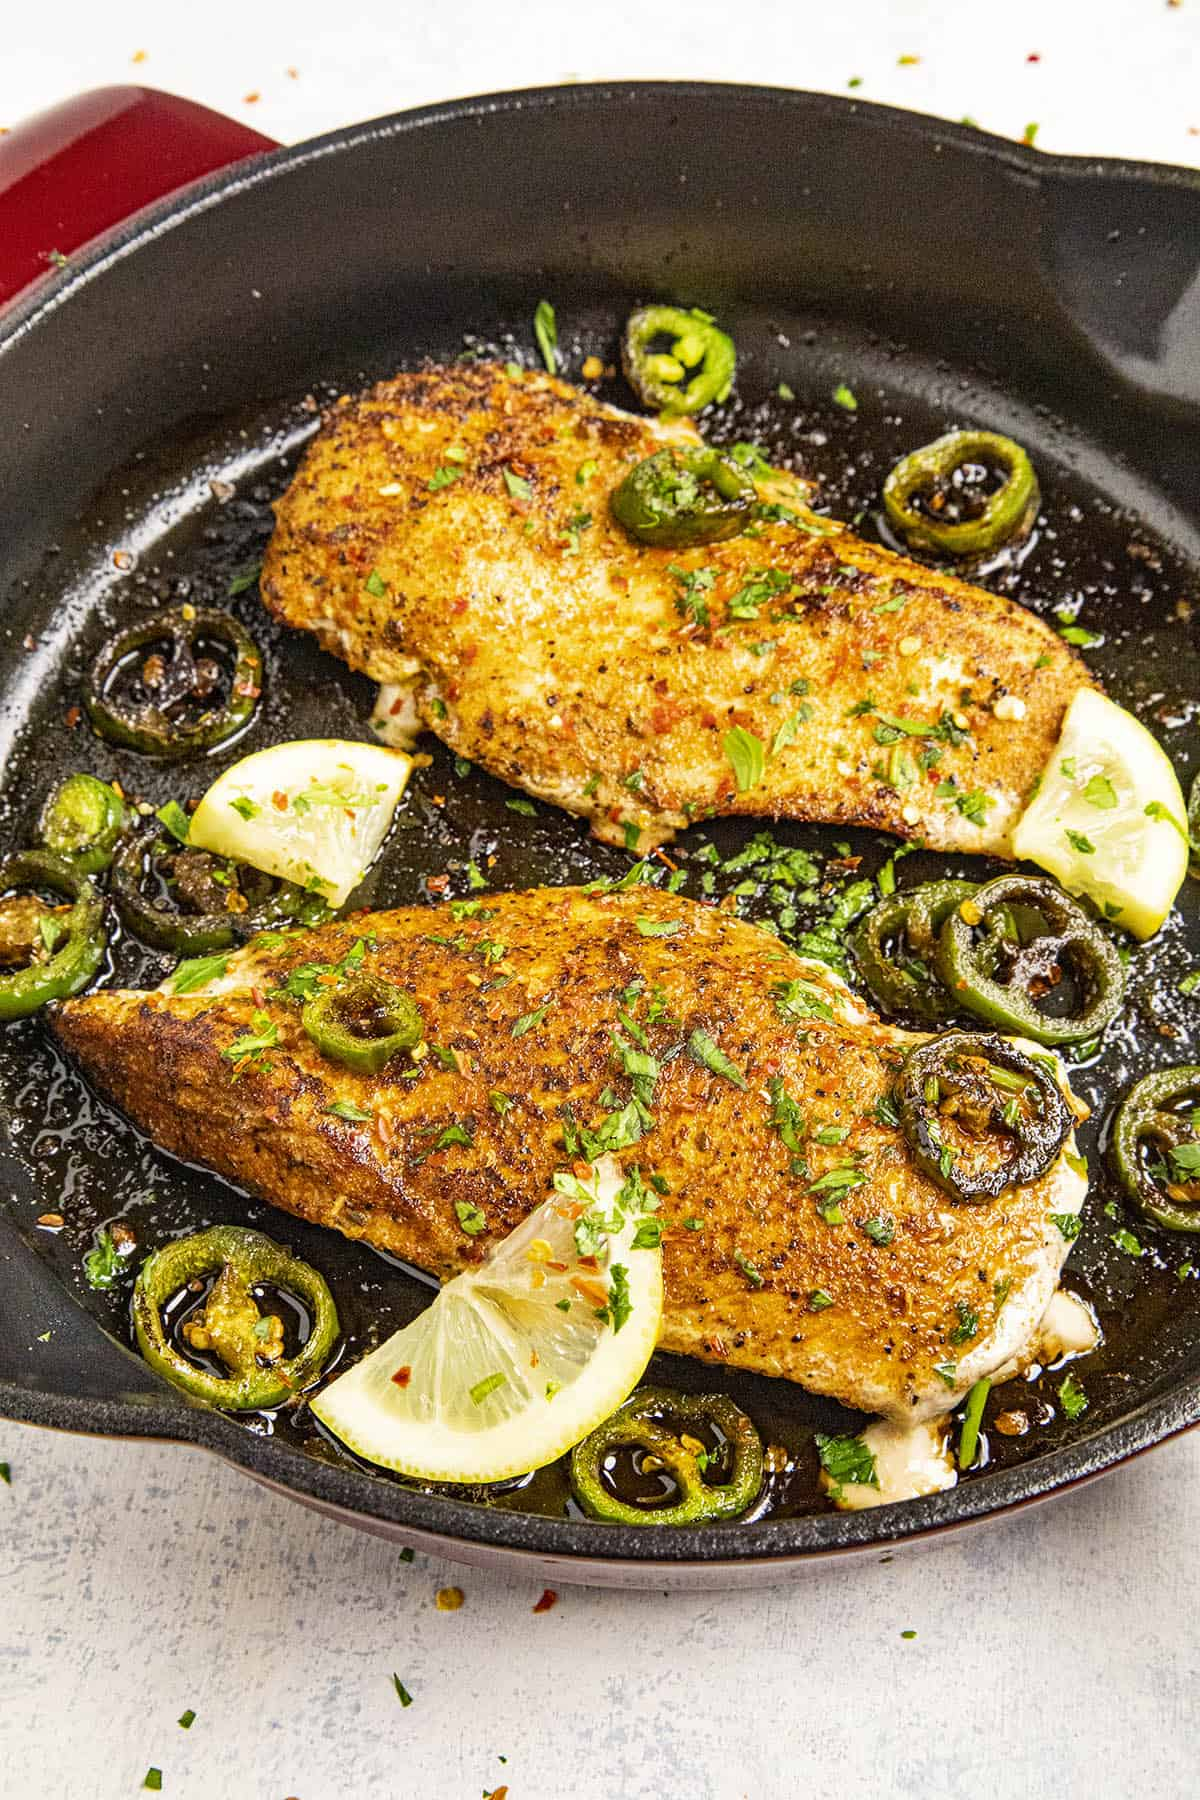 Two Blackened Chicken breasts in a pan